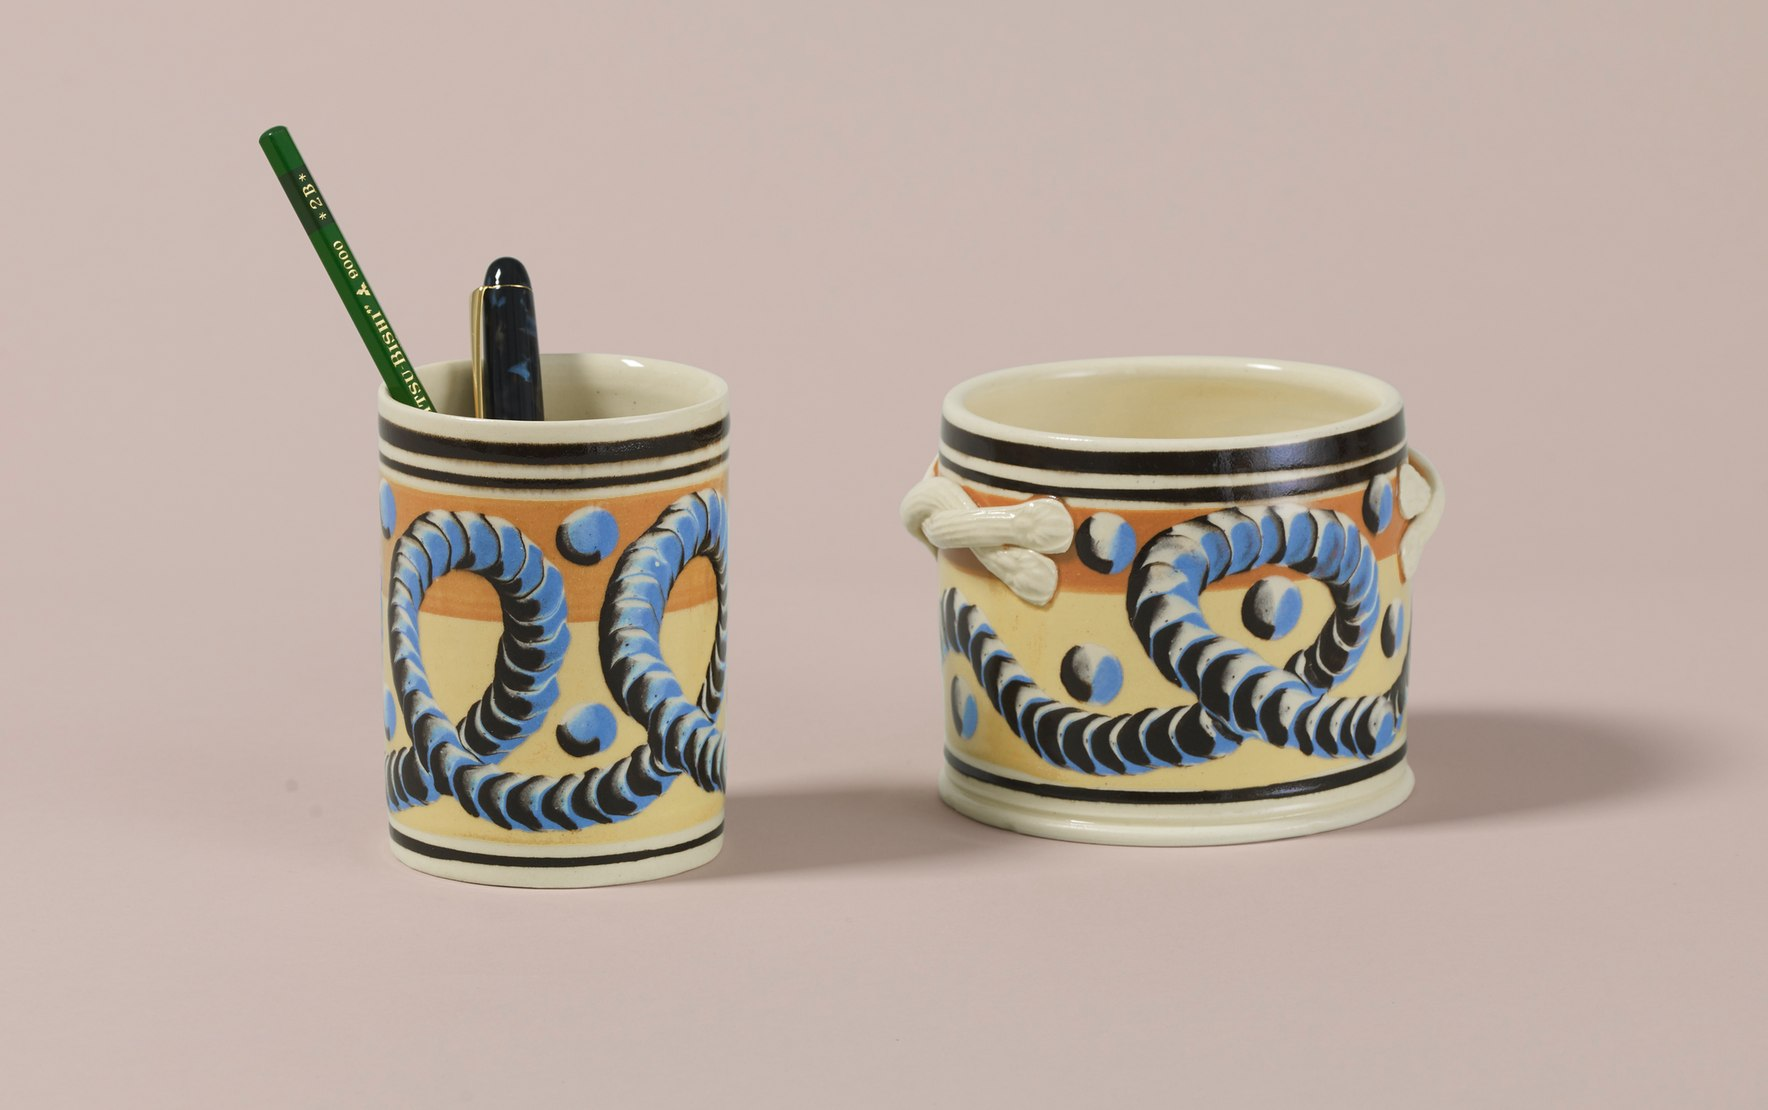 Dual-Tone Persimmon & Yellow Mochaware Ceramic Pen Pot, 'Earthworm'